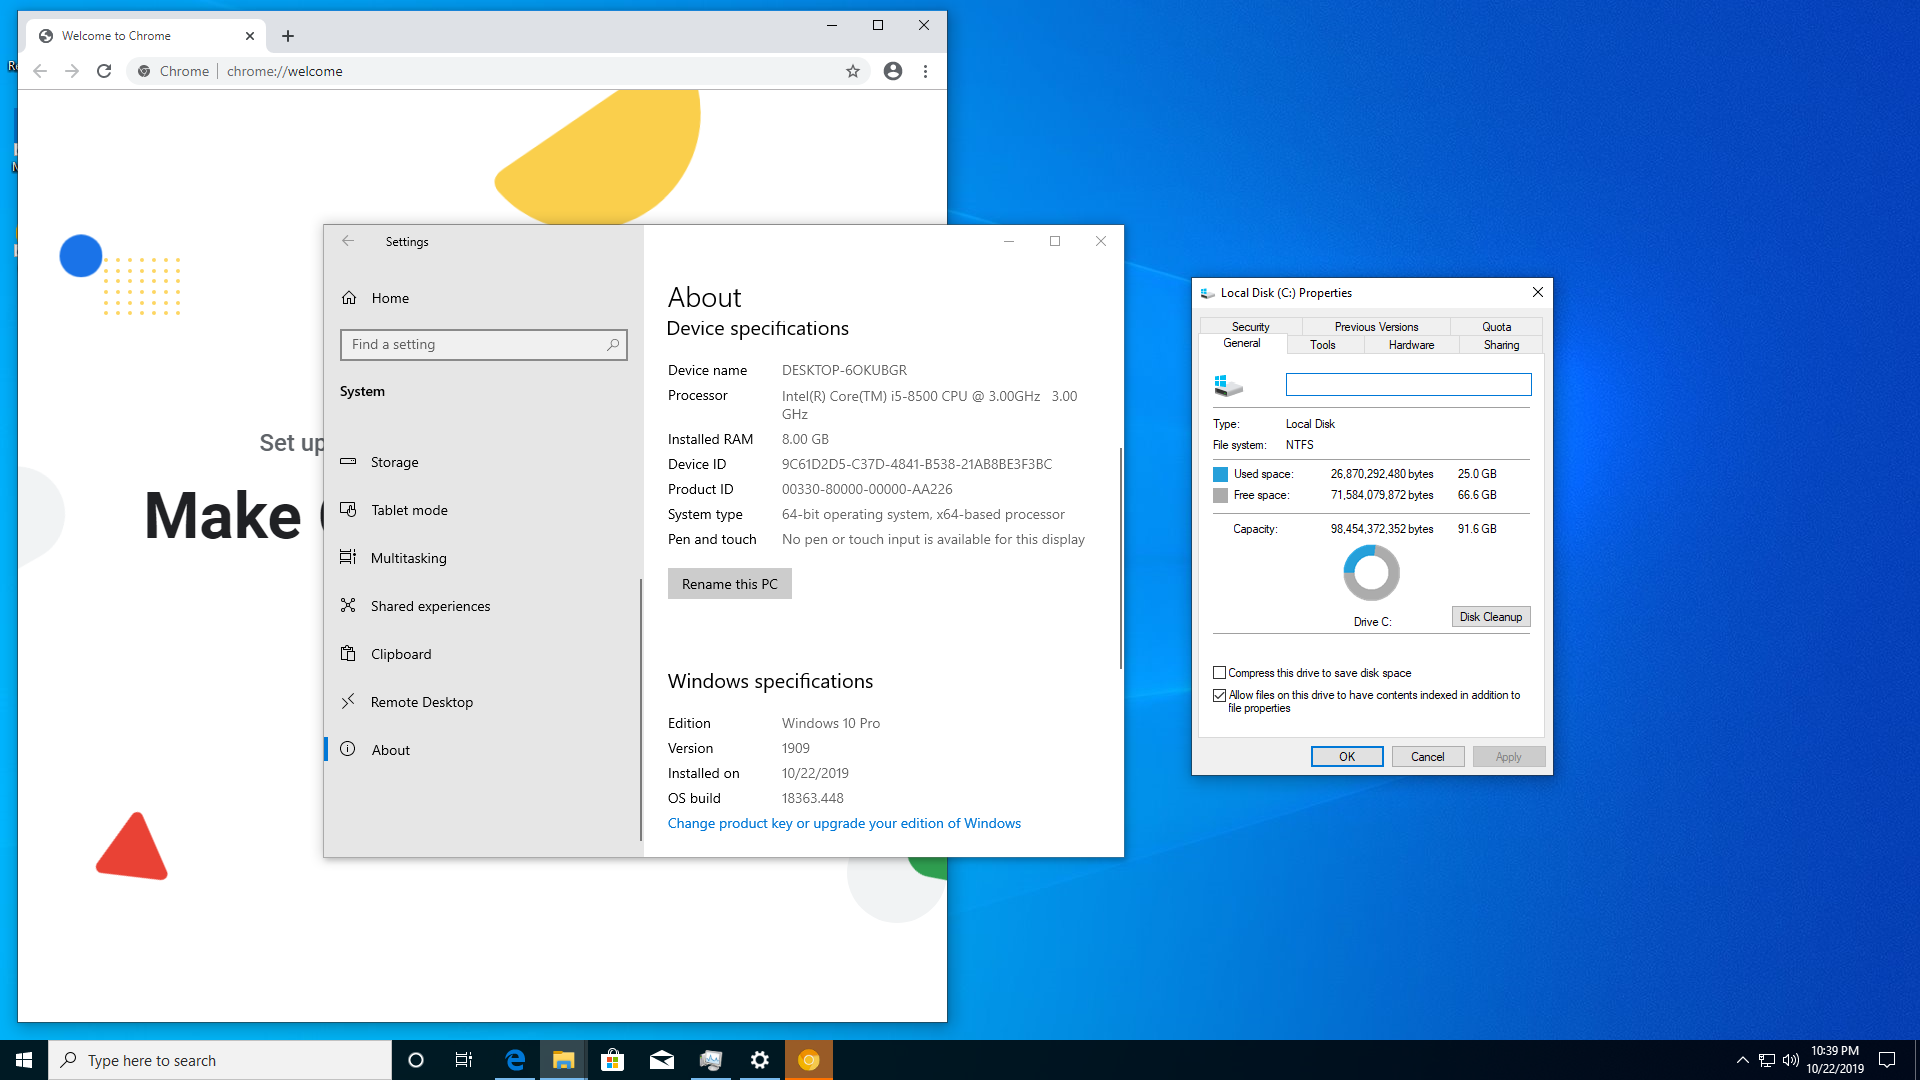 Windows 10 1909 hard drive usage